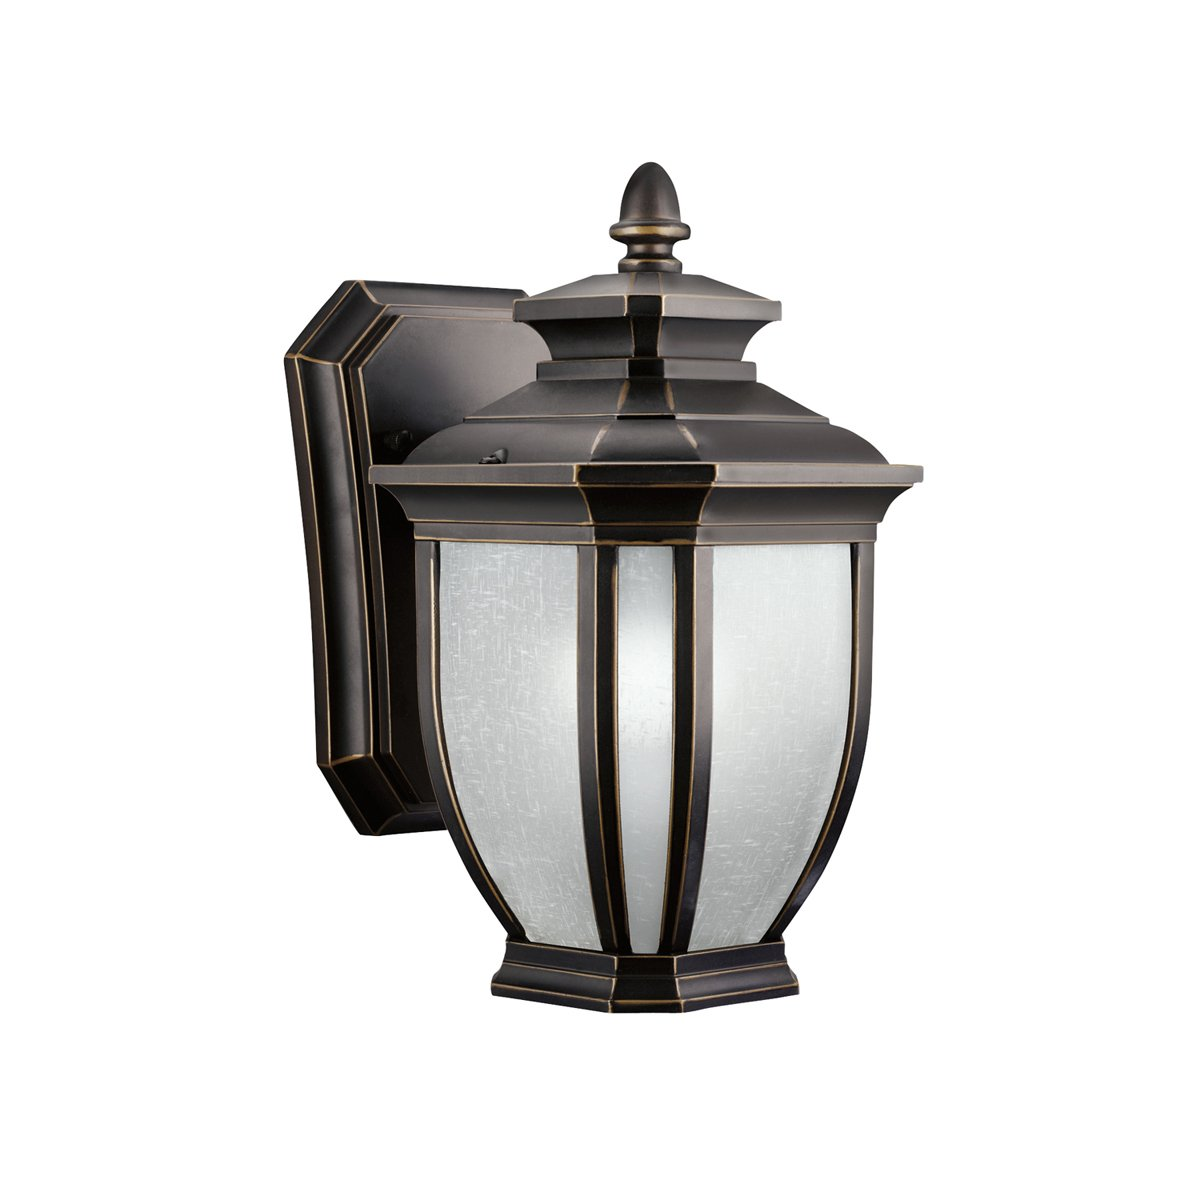 Kichler Lighting 9041RZ Salisbury 1 Light Outdoor Wall Mount Fixture   Rubbed Bronze with White Linen Glass   Wall Porch Lights   Amazon comKichler Lighting 9041RZ Salisbury 1 Light Outdoor Wall Mount  . Kichler Lighting Outdoor Sconce. Home Design Ideas